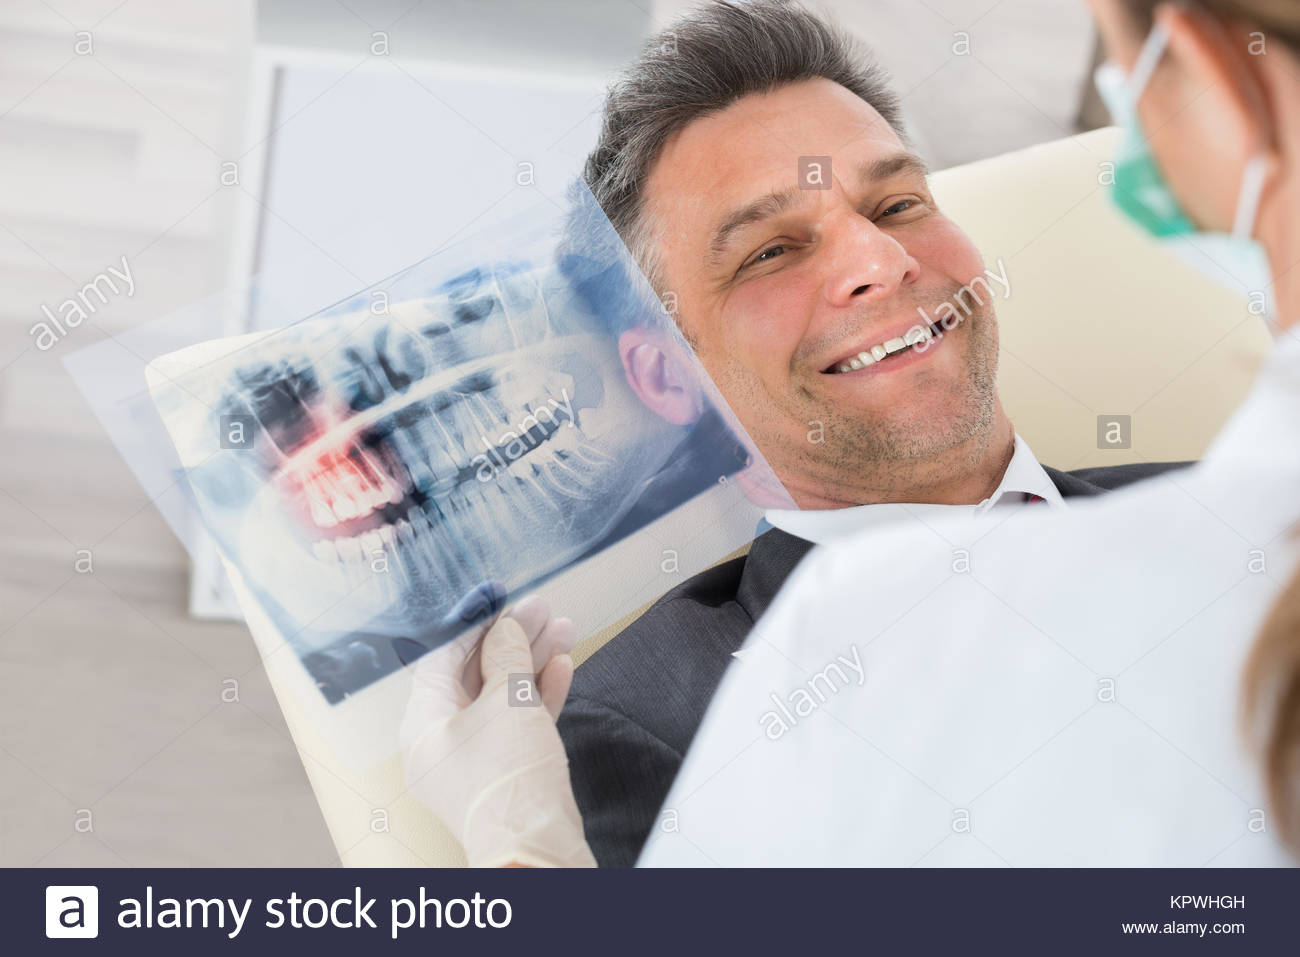 Dentist With Teeth X-ray In Front Of Businessman - Stock Image